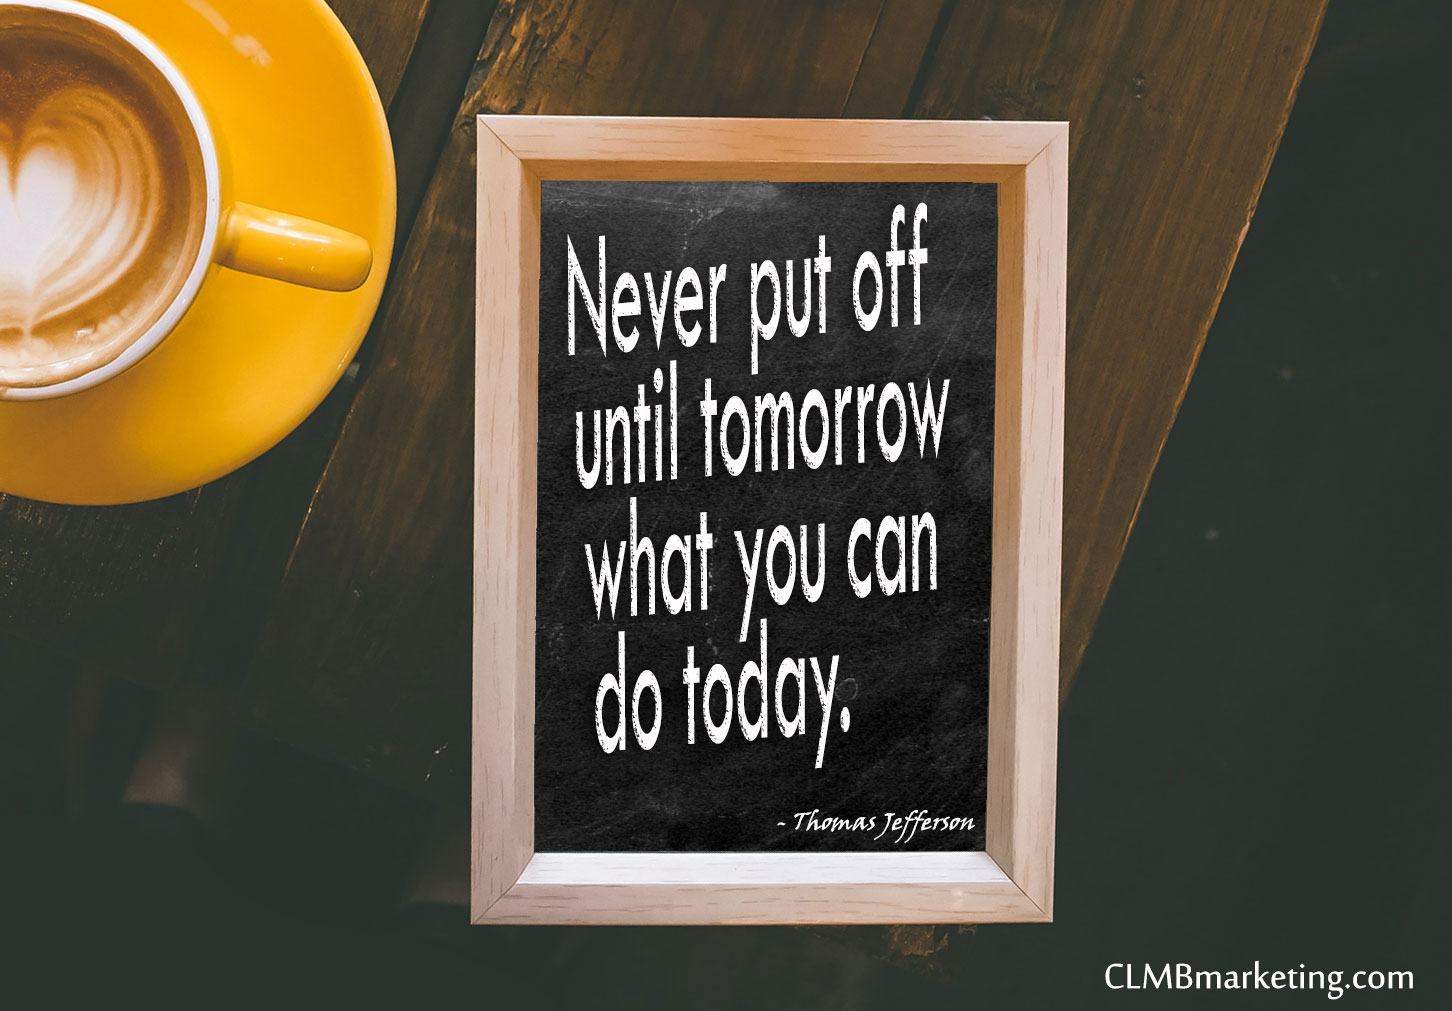 Never put off until tomorrow what you can do today. - Thomas Jefferson